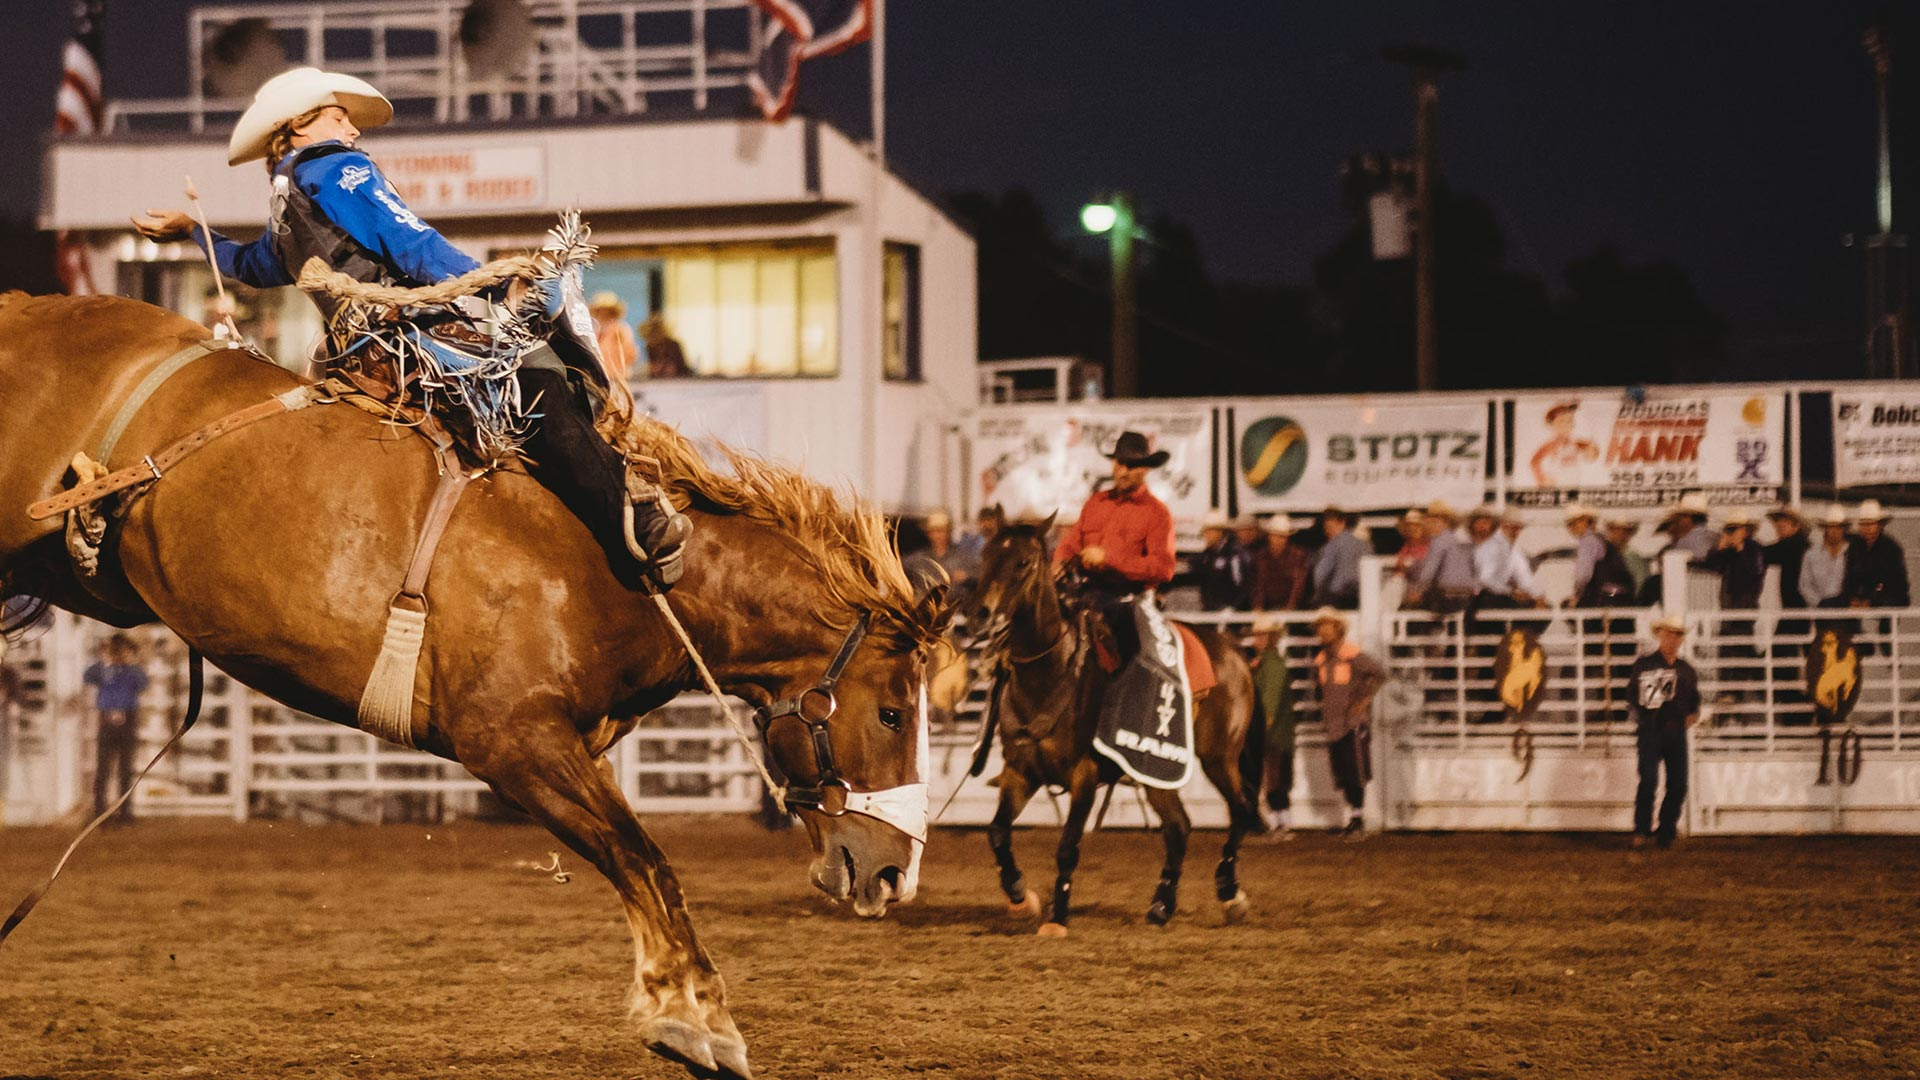 PRCA Rodeo & WY State Championship Ranch Rodeo - Presented by Wyoming Machinery Company